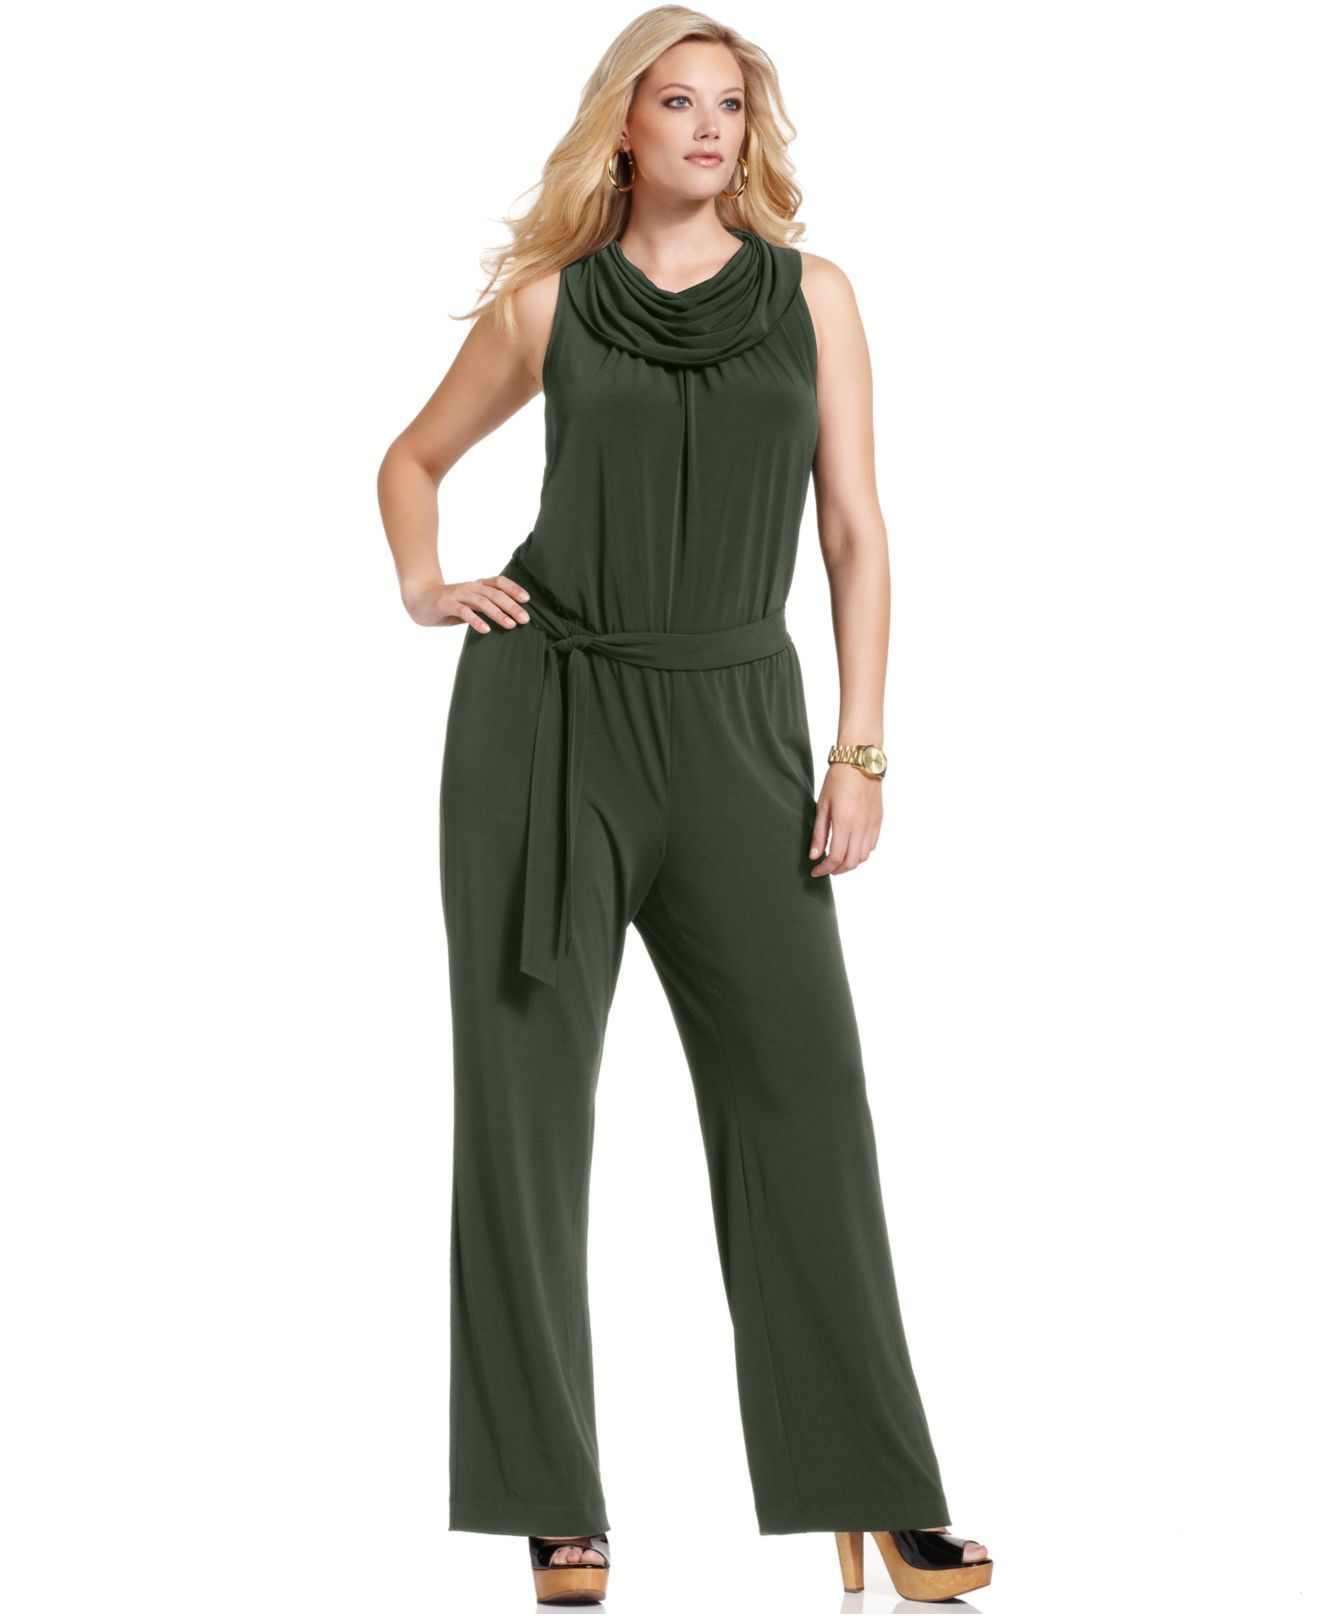 987a7d0cee7 Michael Kors Sleeveless Belted Cowl-Neck Plus Size Jumpsuit